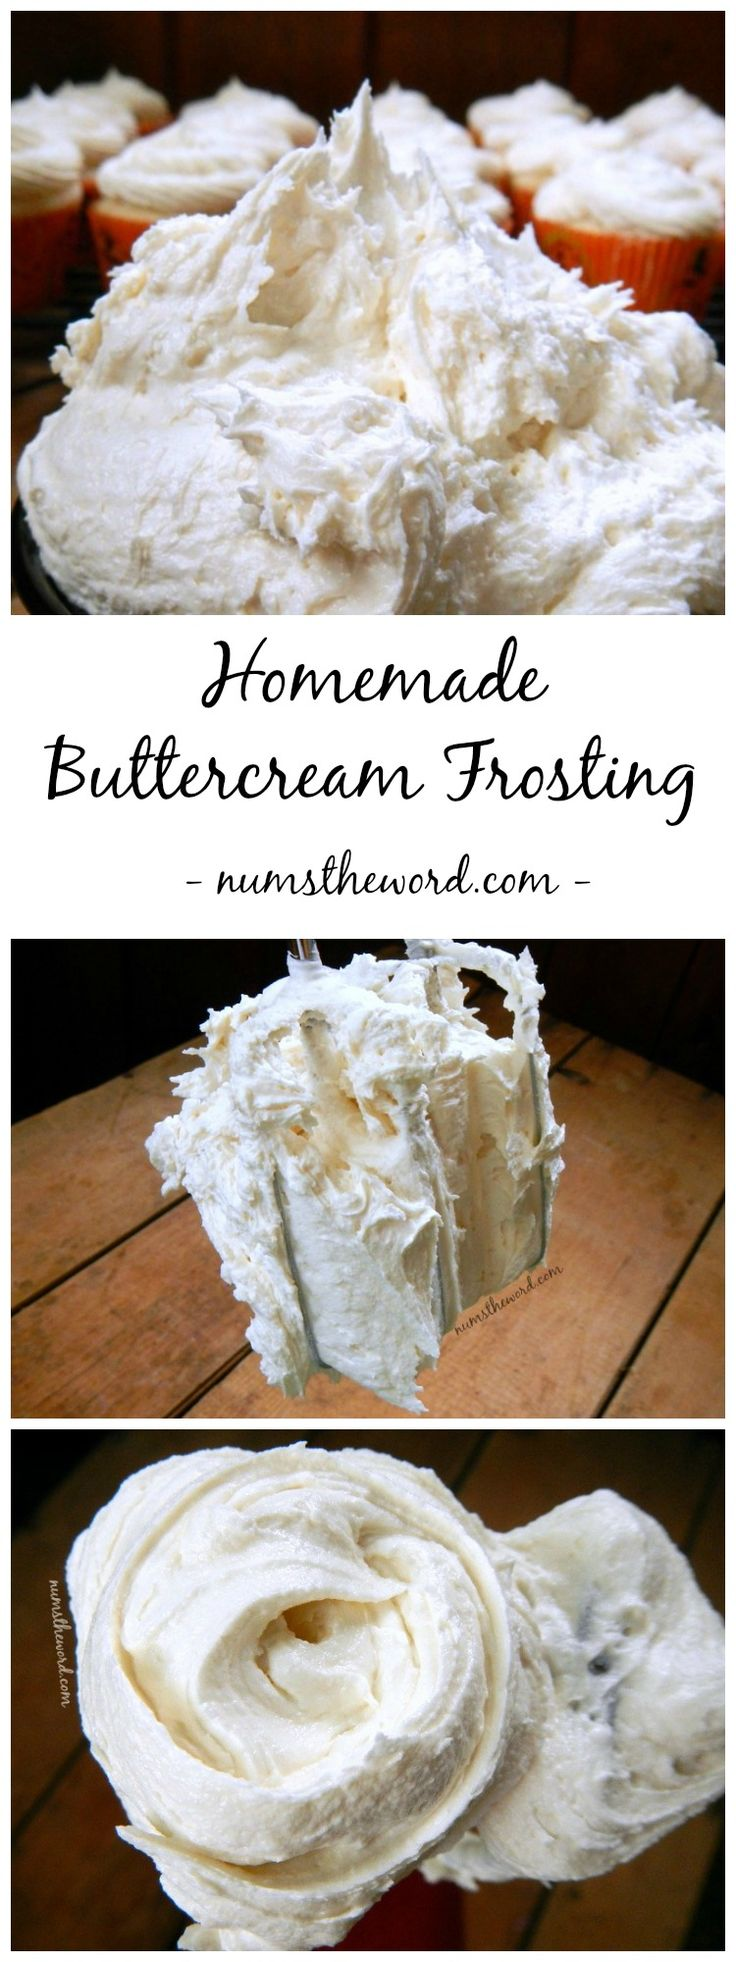 Homemade Buttercream Frosting - Looking for the perfect cake or cupcake frosting? Try this 5 minute homemade buttercream frosting. It's perfect with any flavor cake and the best I've had!